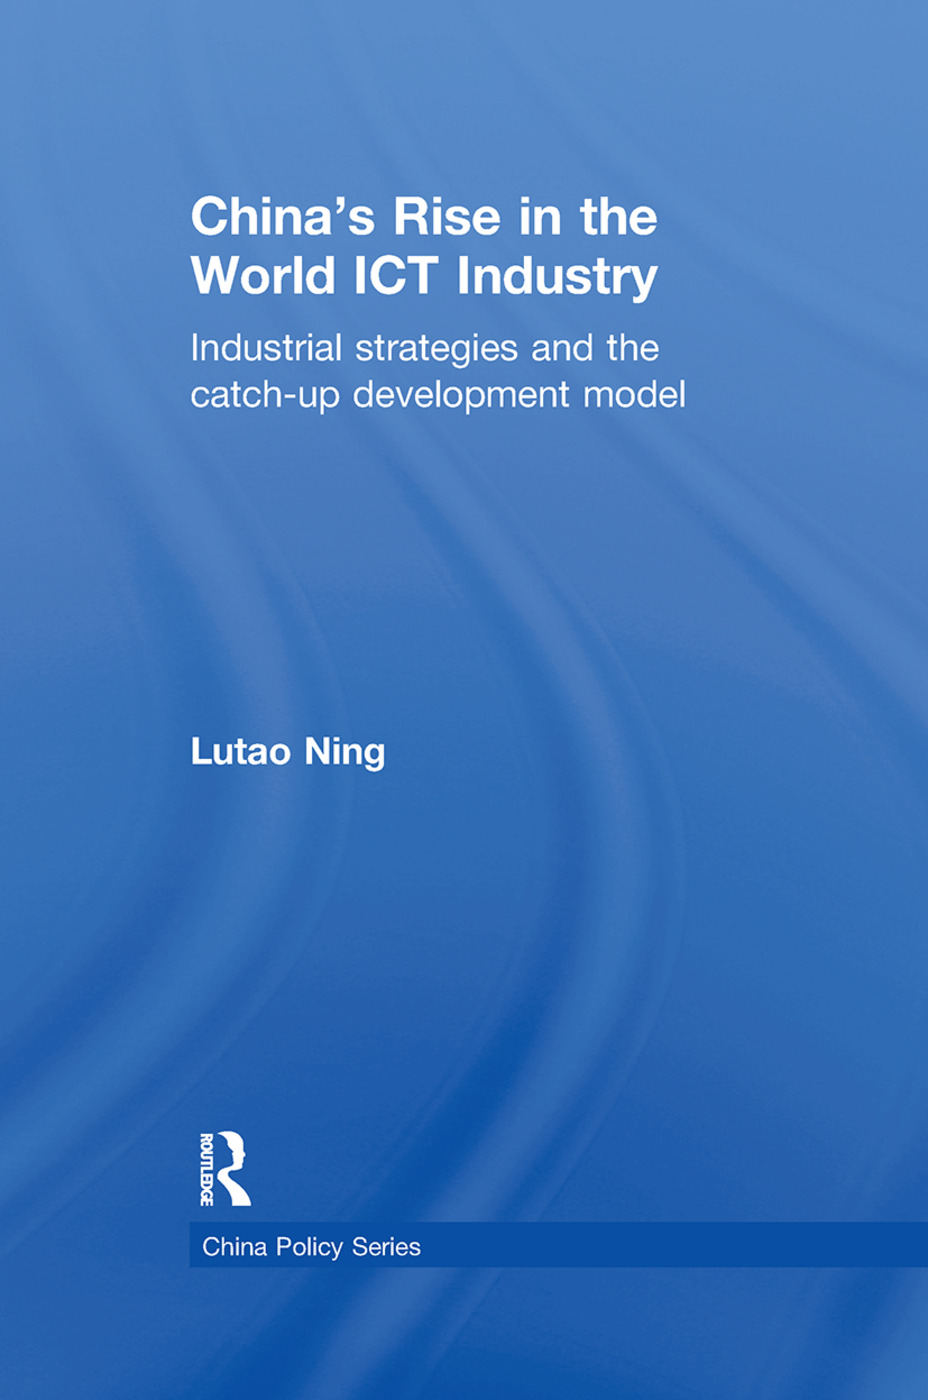 China's Rise in the World ICT Industry: Industrial Strategies and the Catch-Up Development Model book cover